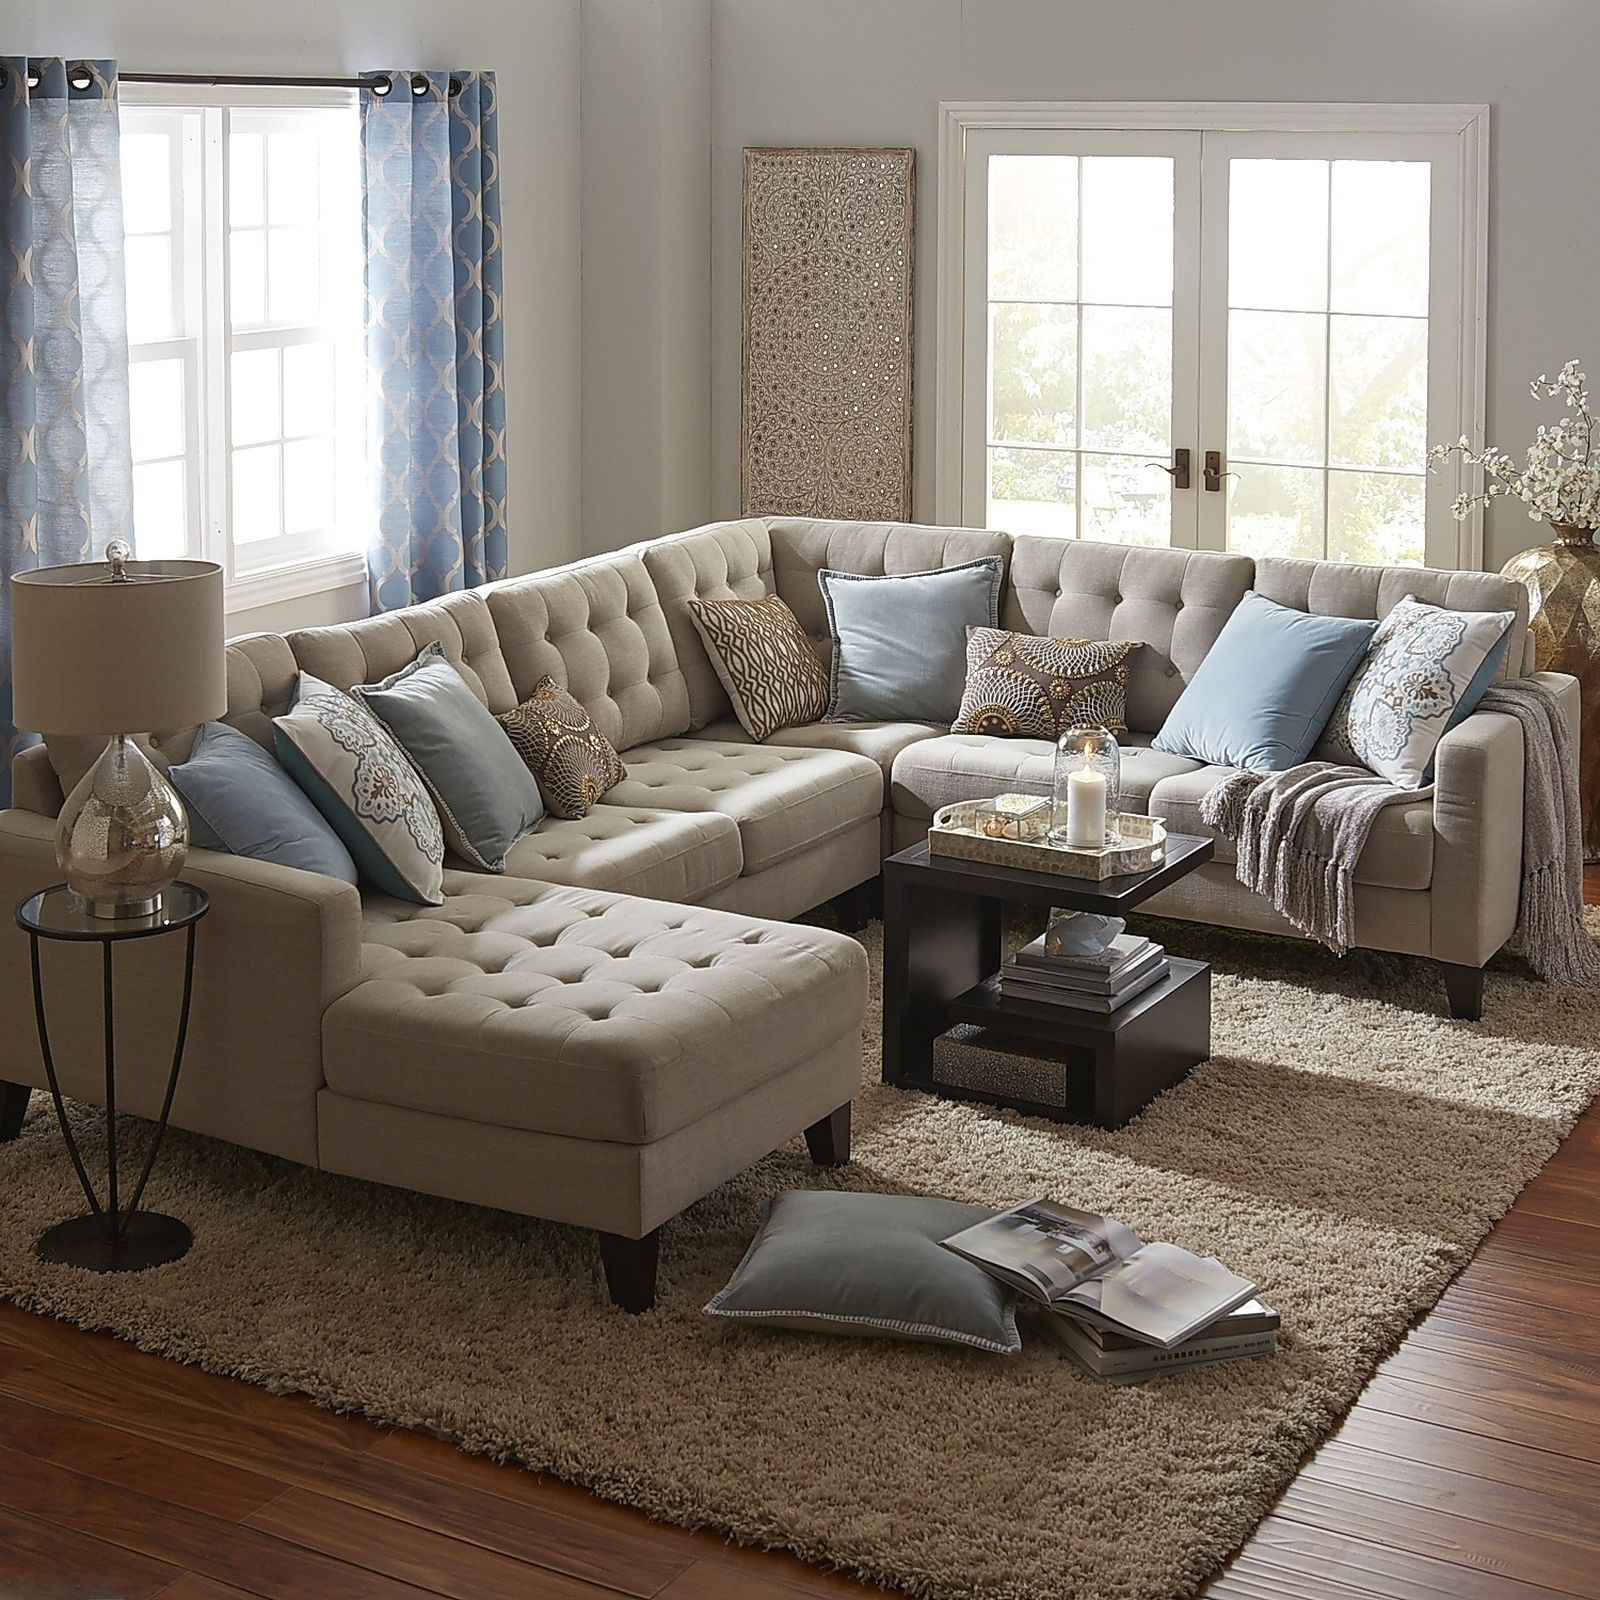 Most Current Sectional Sofas With Epic Sectional Sofas 89 Living Room Sofa Inspiration With (View 6 of 20)